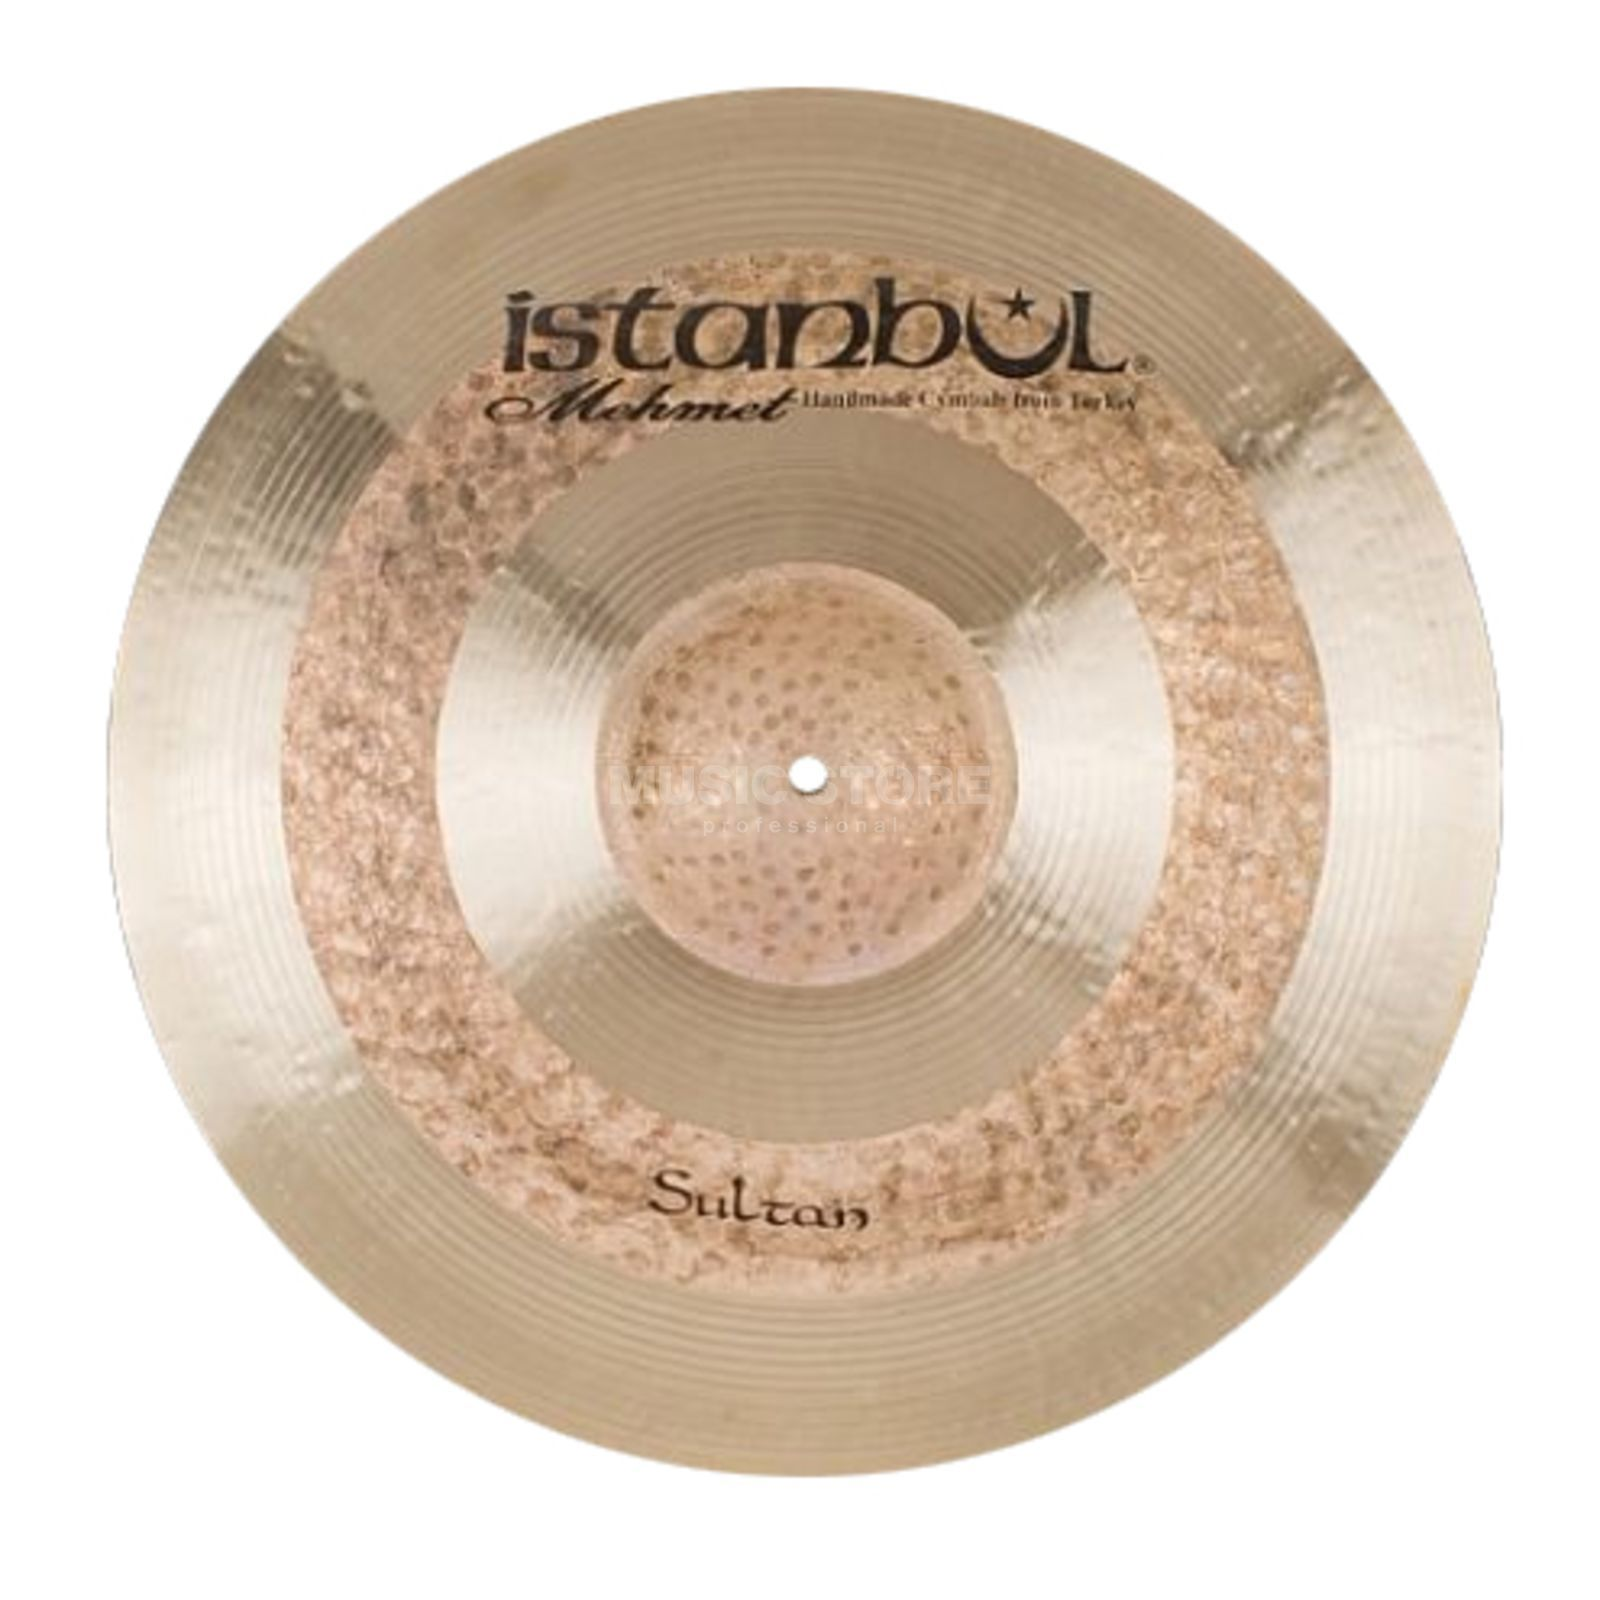 "Istanbul Sultan Thin Crash 18"", CTS19 Produktbillede"